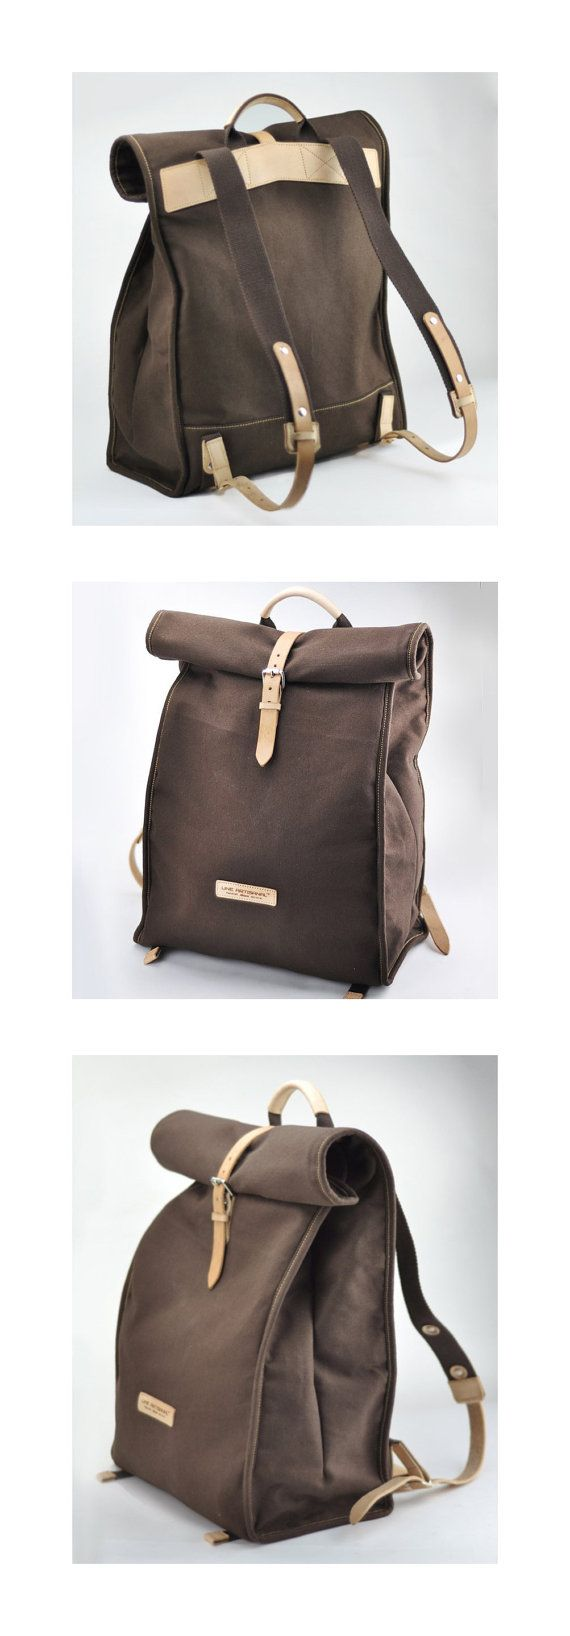 Original Design Retro Backpack by QQBoutique on Etsy, £134.00